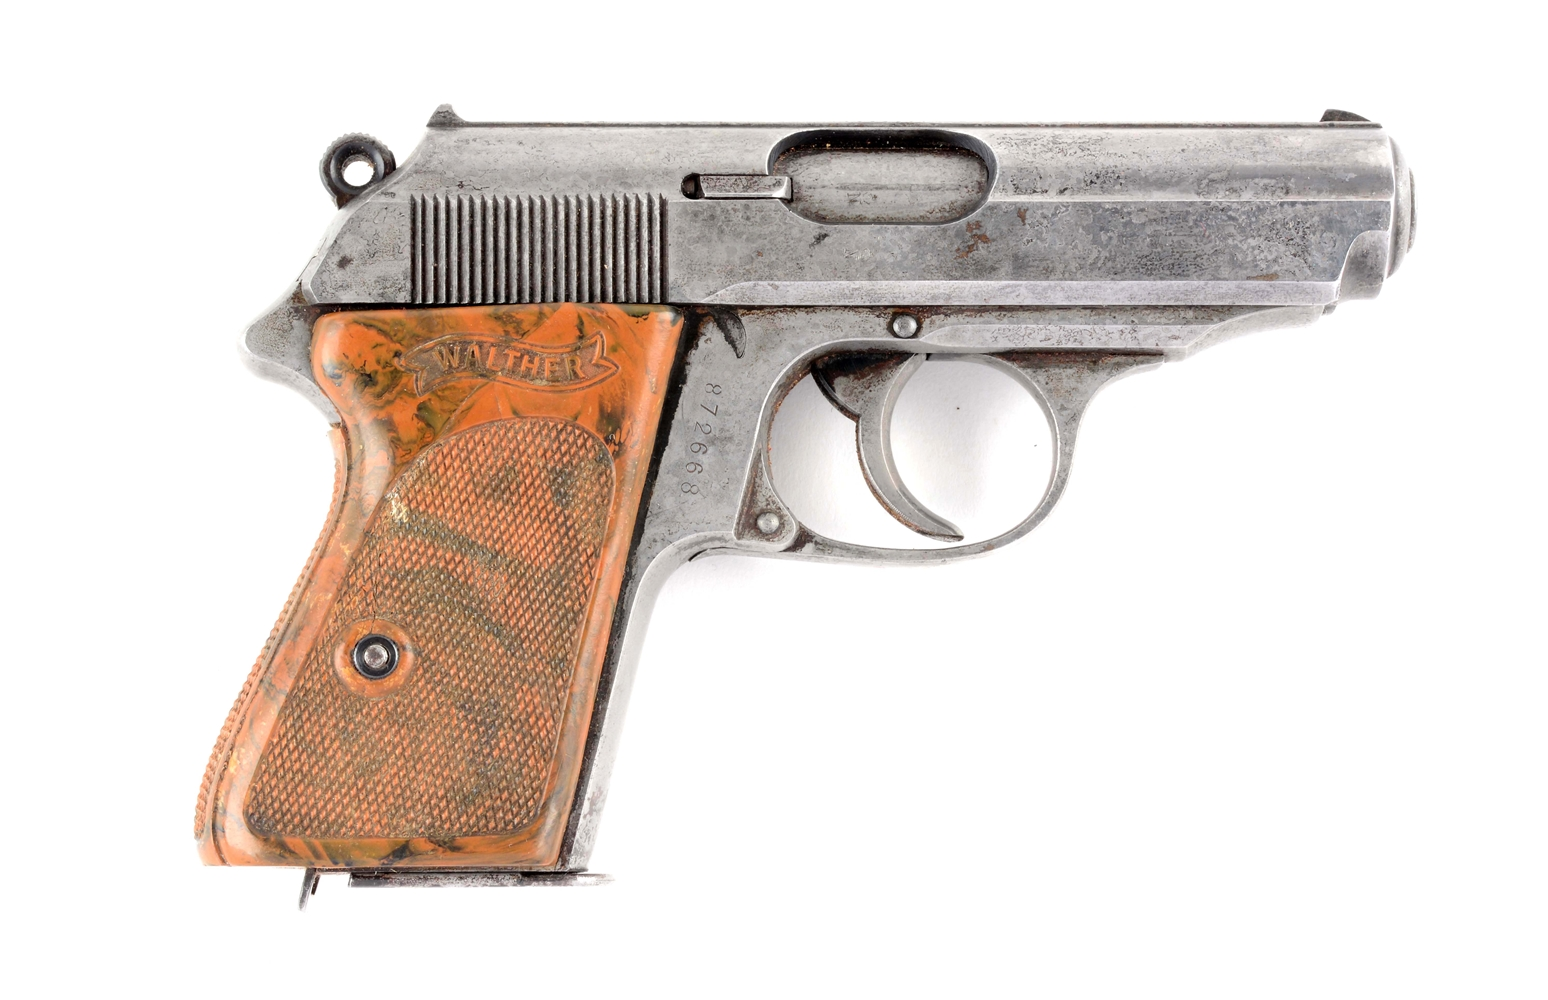 (C) Pre-War Walther Model PPK Semi-Automatic Pistol.